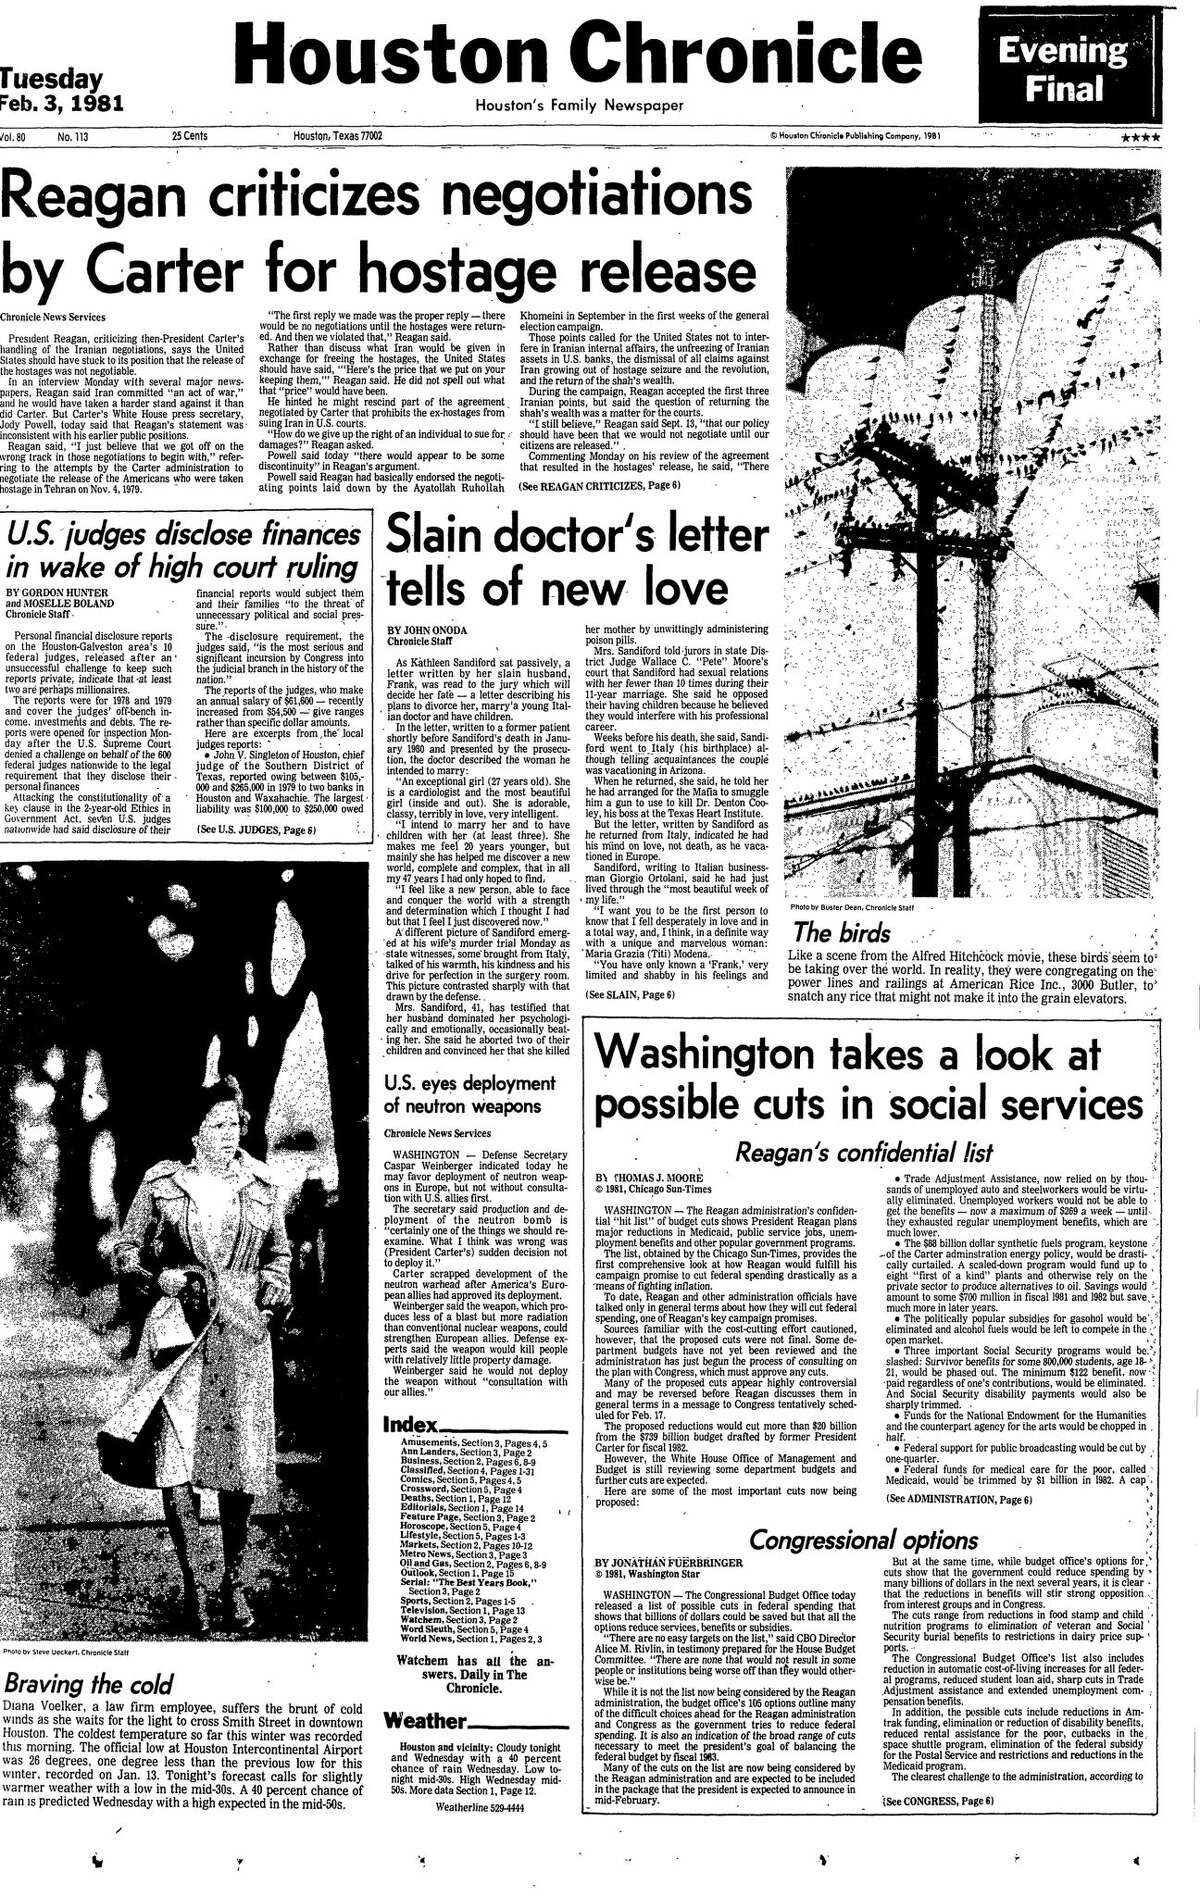 Houston Chronicle front page from Feb. 3, 1981.